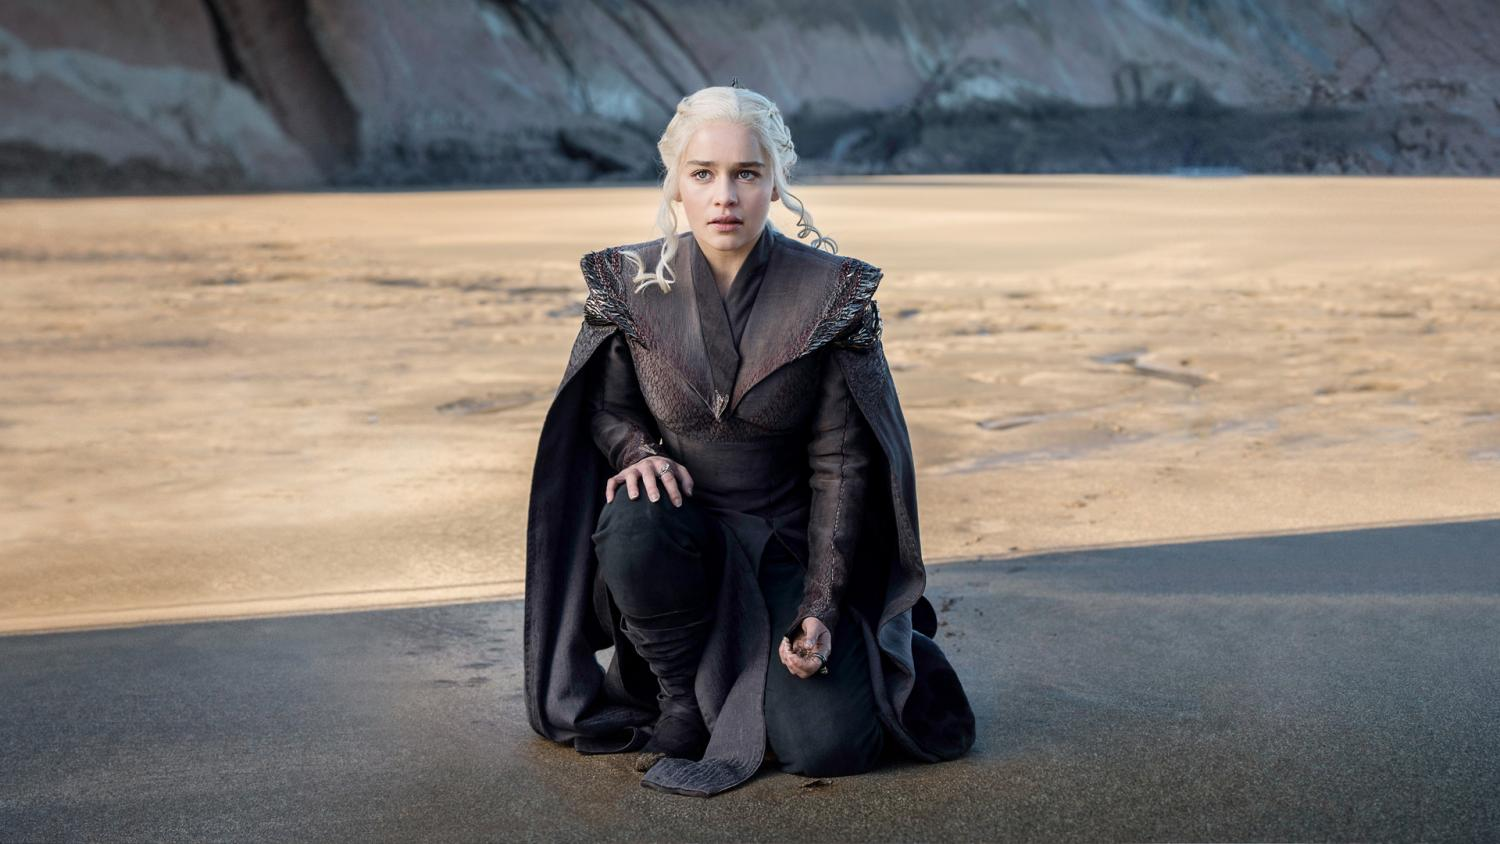 Daenerys Targaryen kneels at Dragonstone shore.